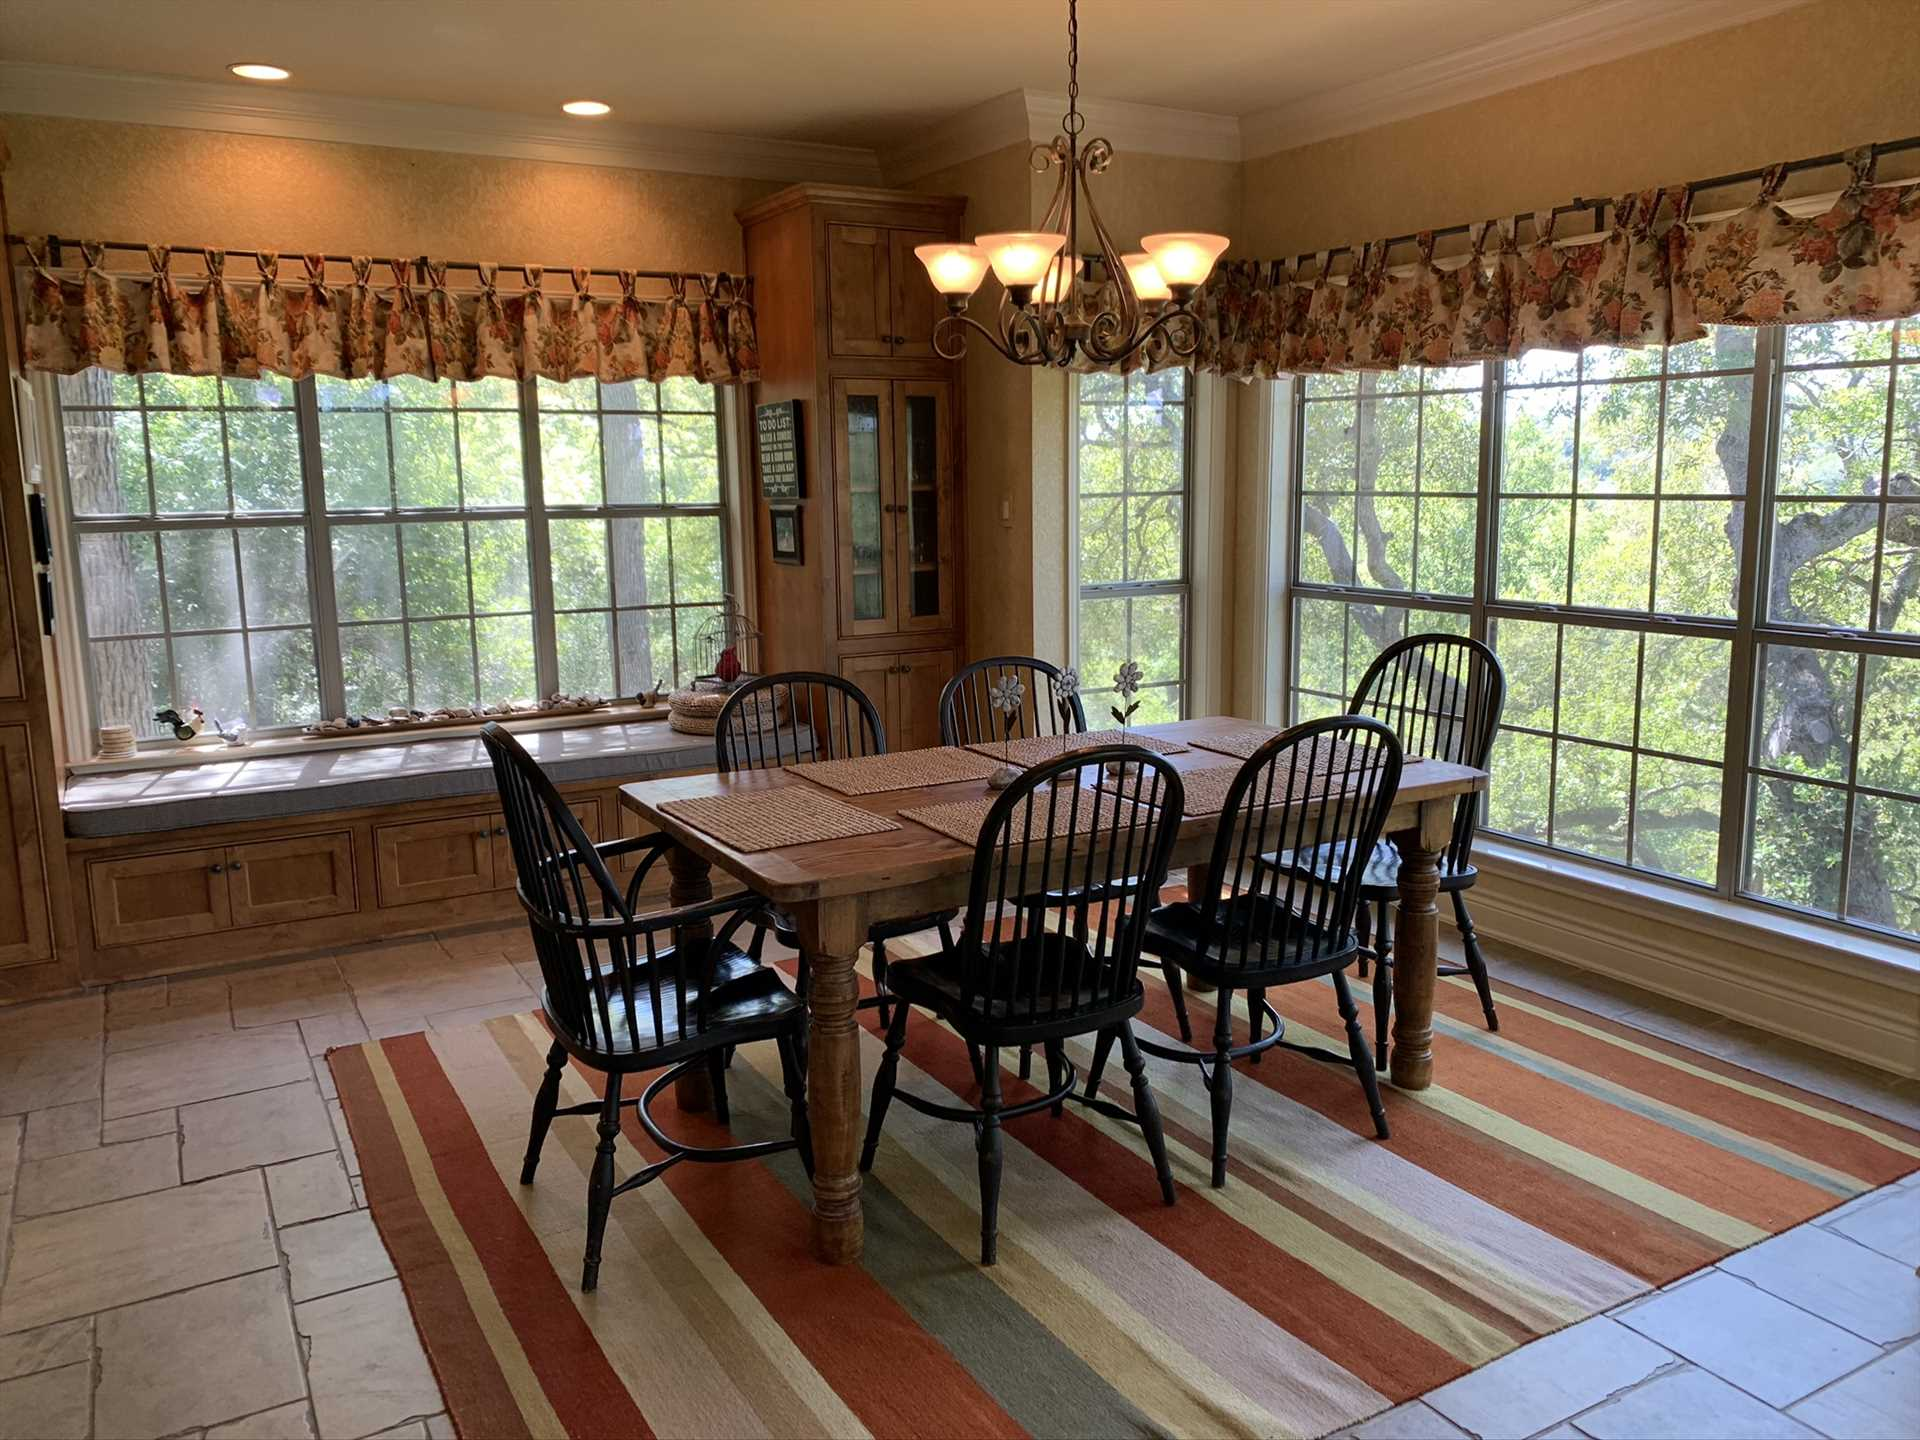 Those pretty views surround you and your family and friends in the dining room and adjacent breakfast nook.